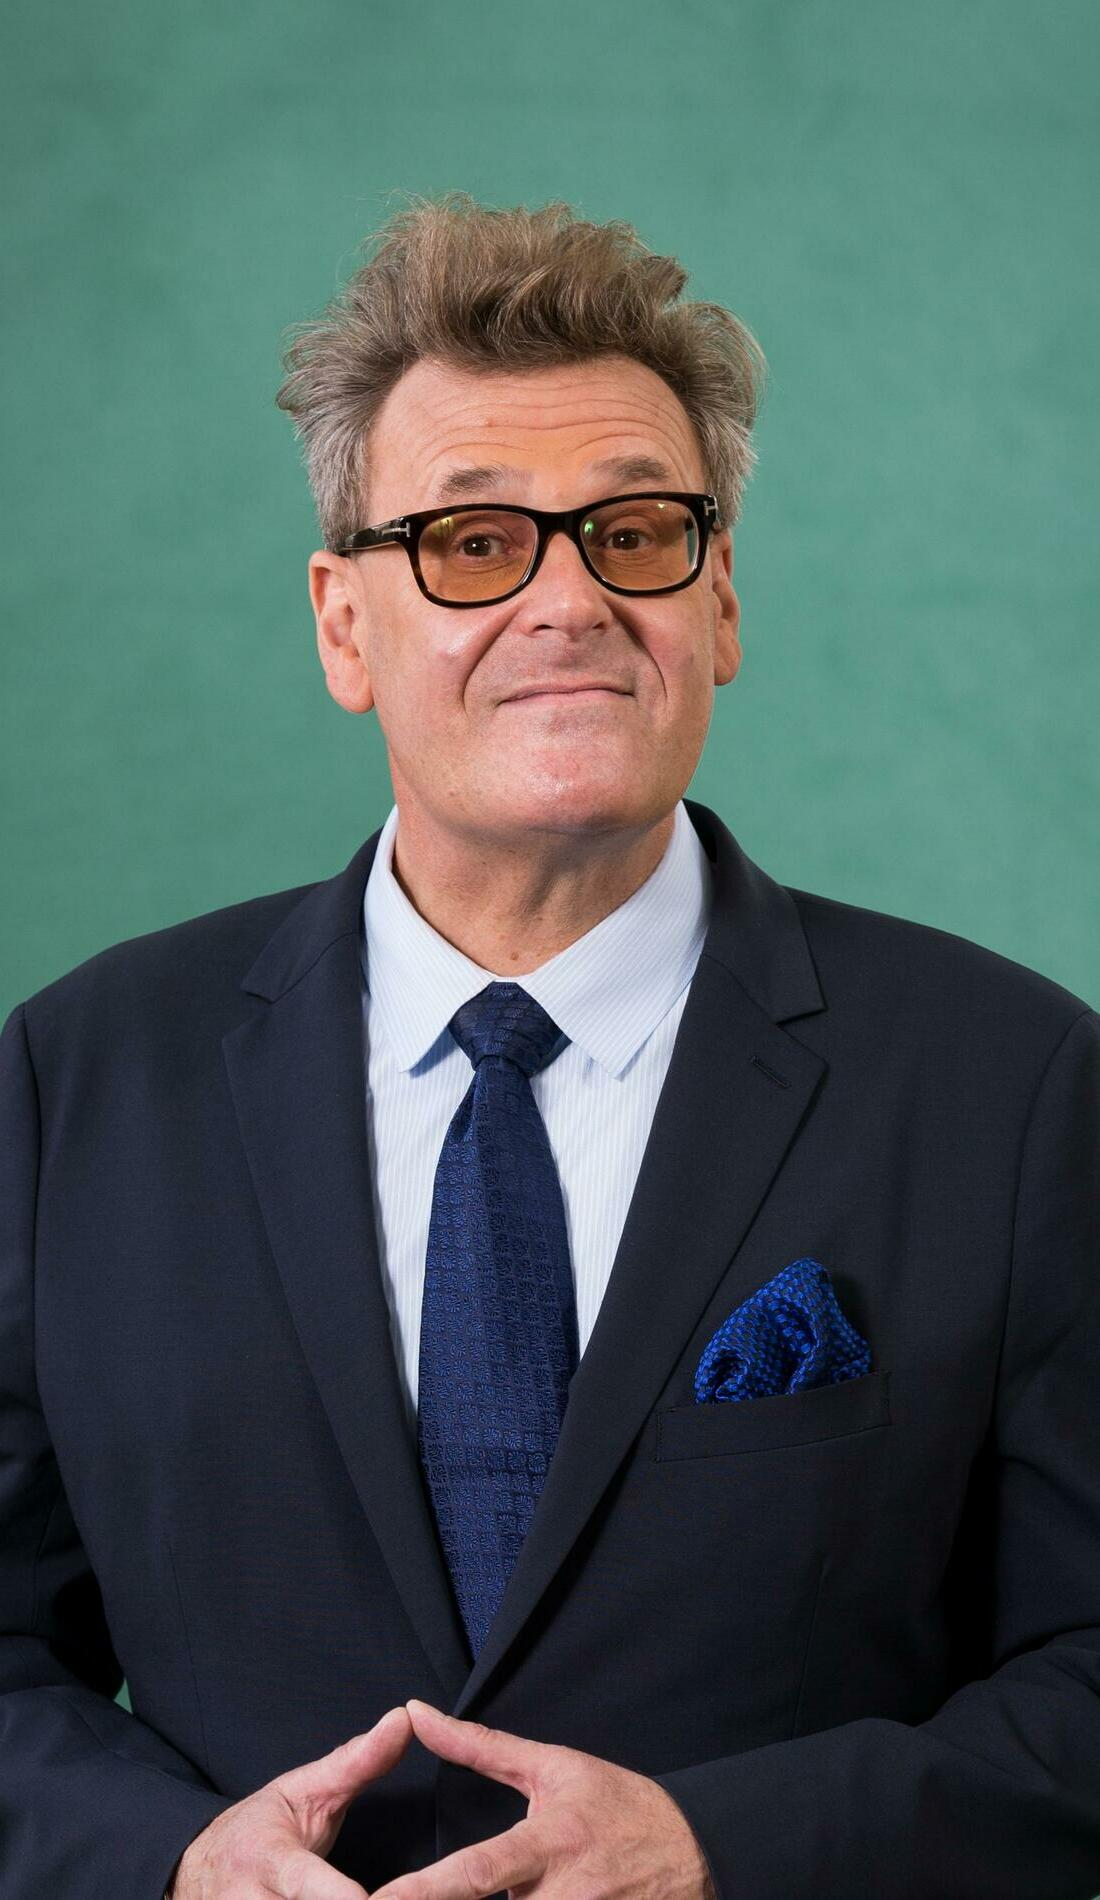 A Greg Proops live event